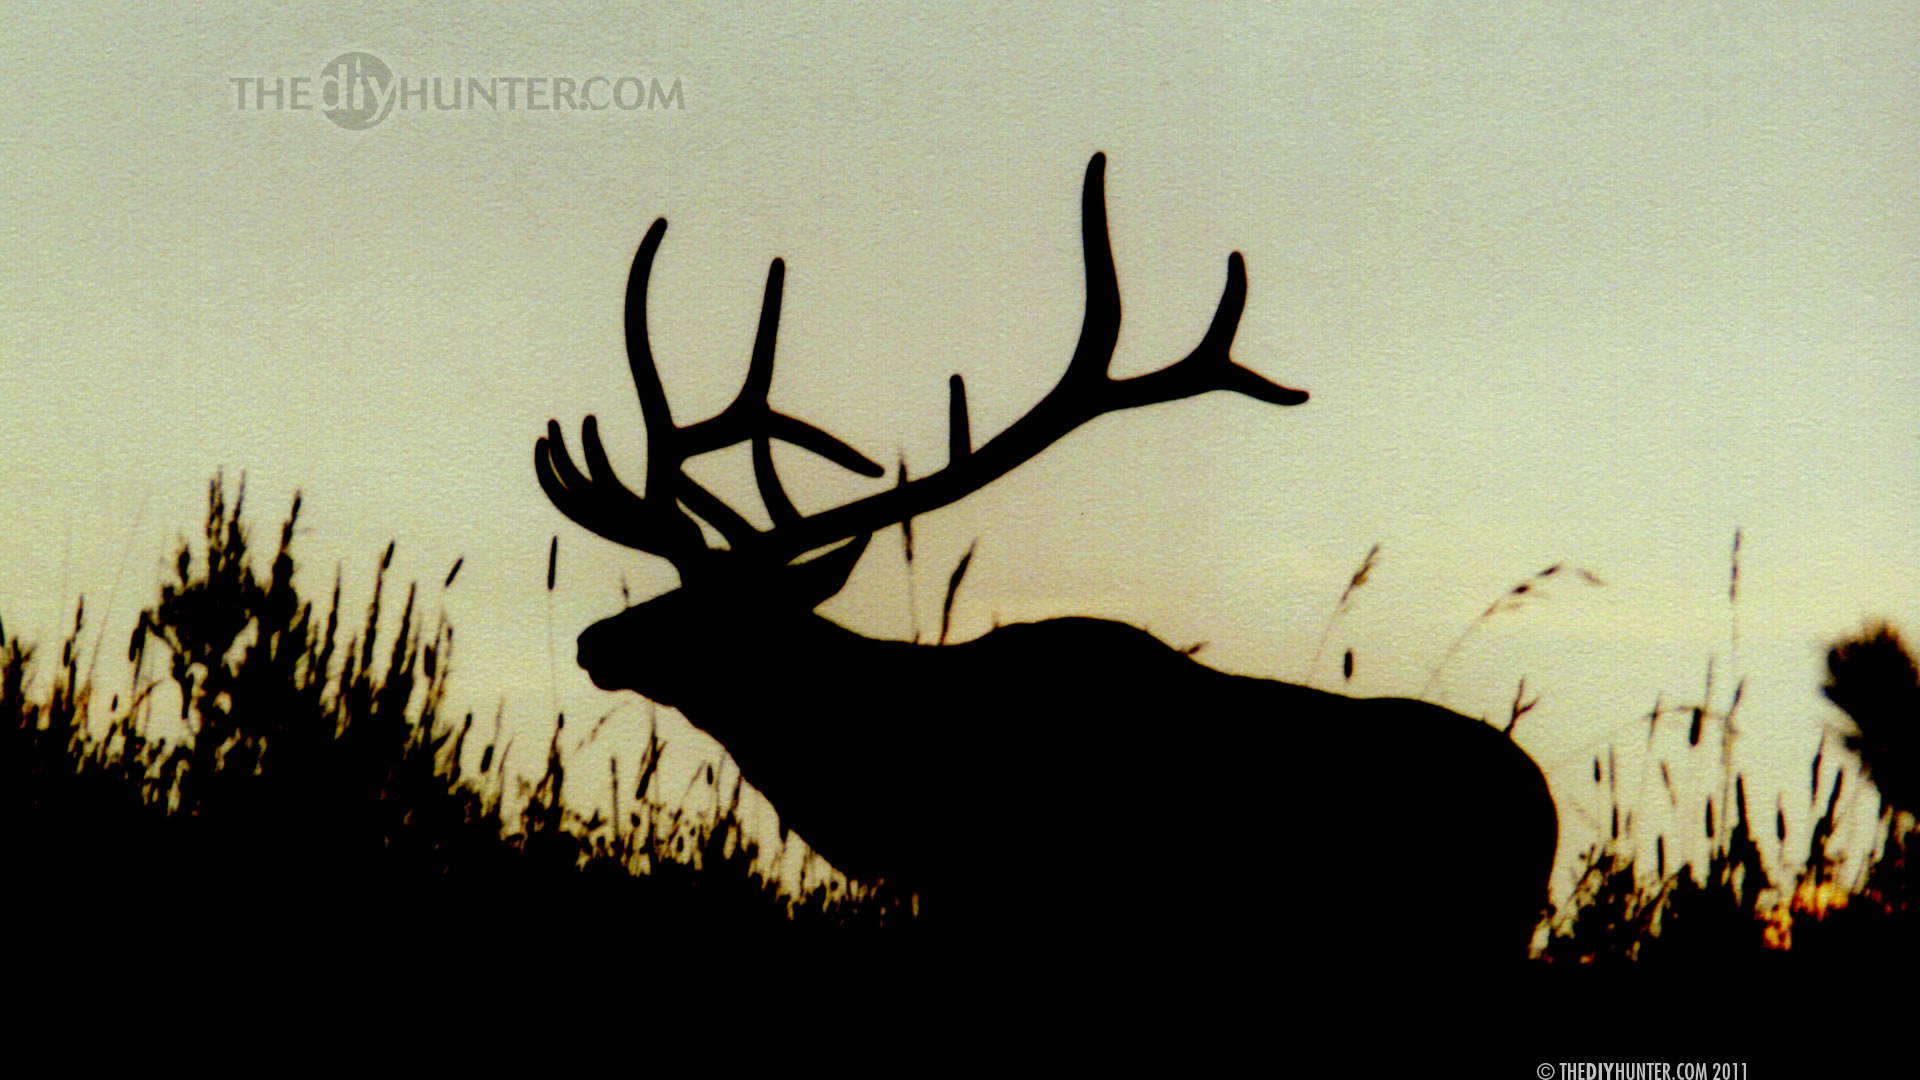 Browning Deer Desktop Wallpaper 2011   computer desktop 1920x1080